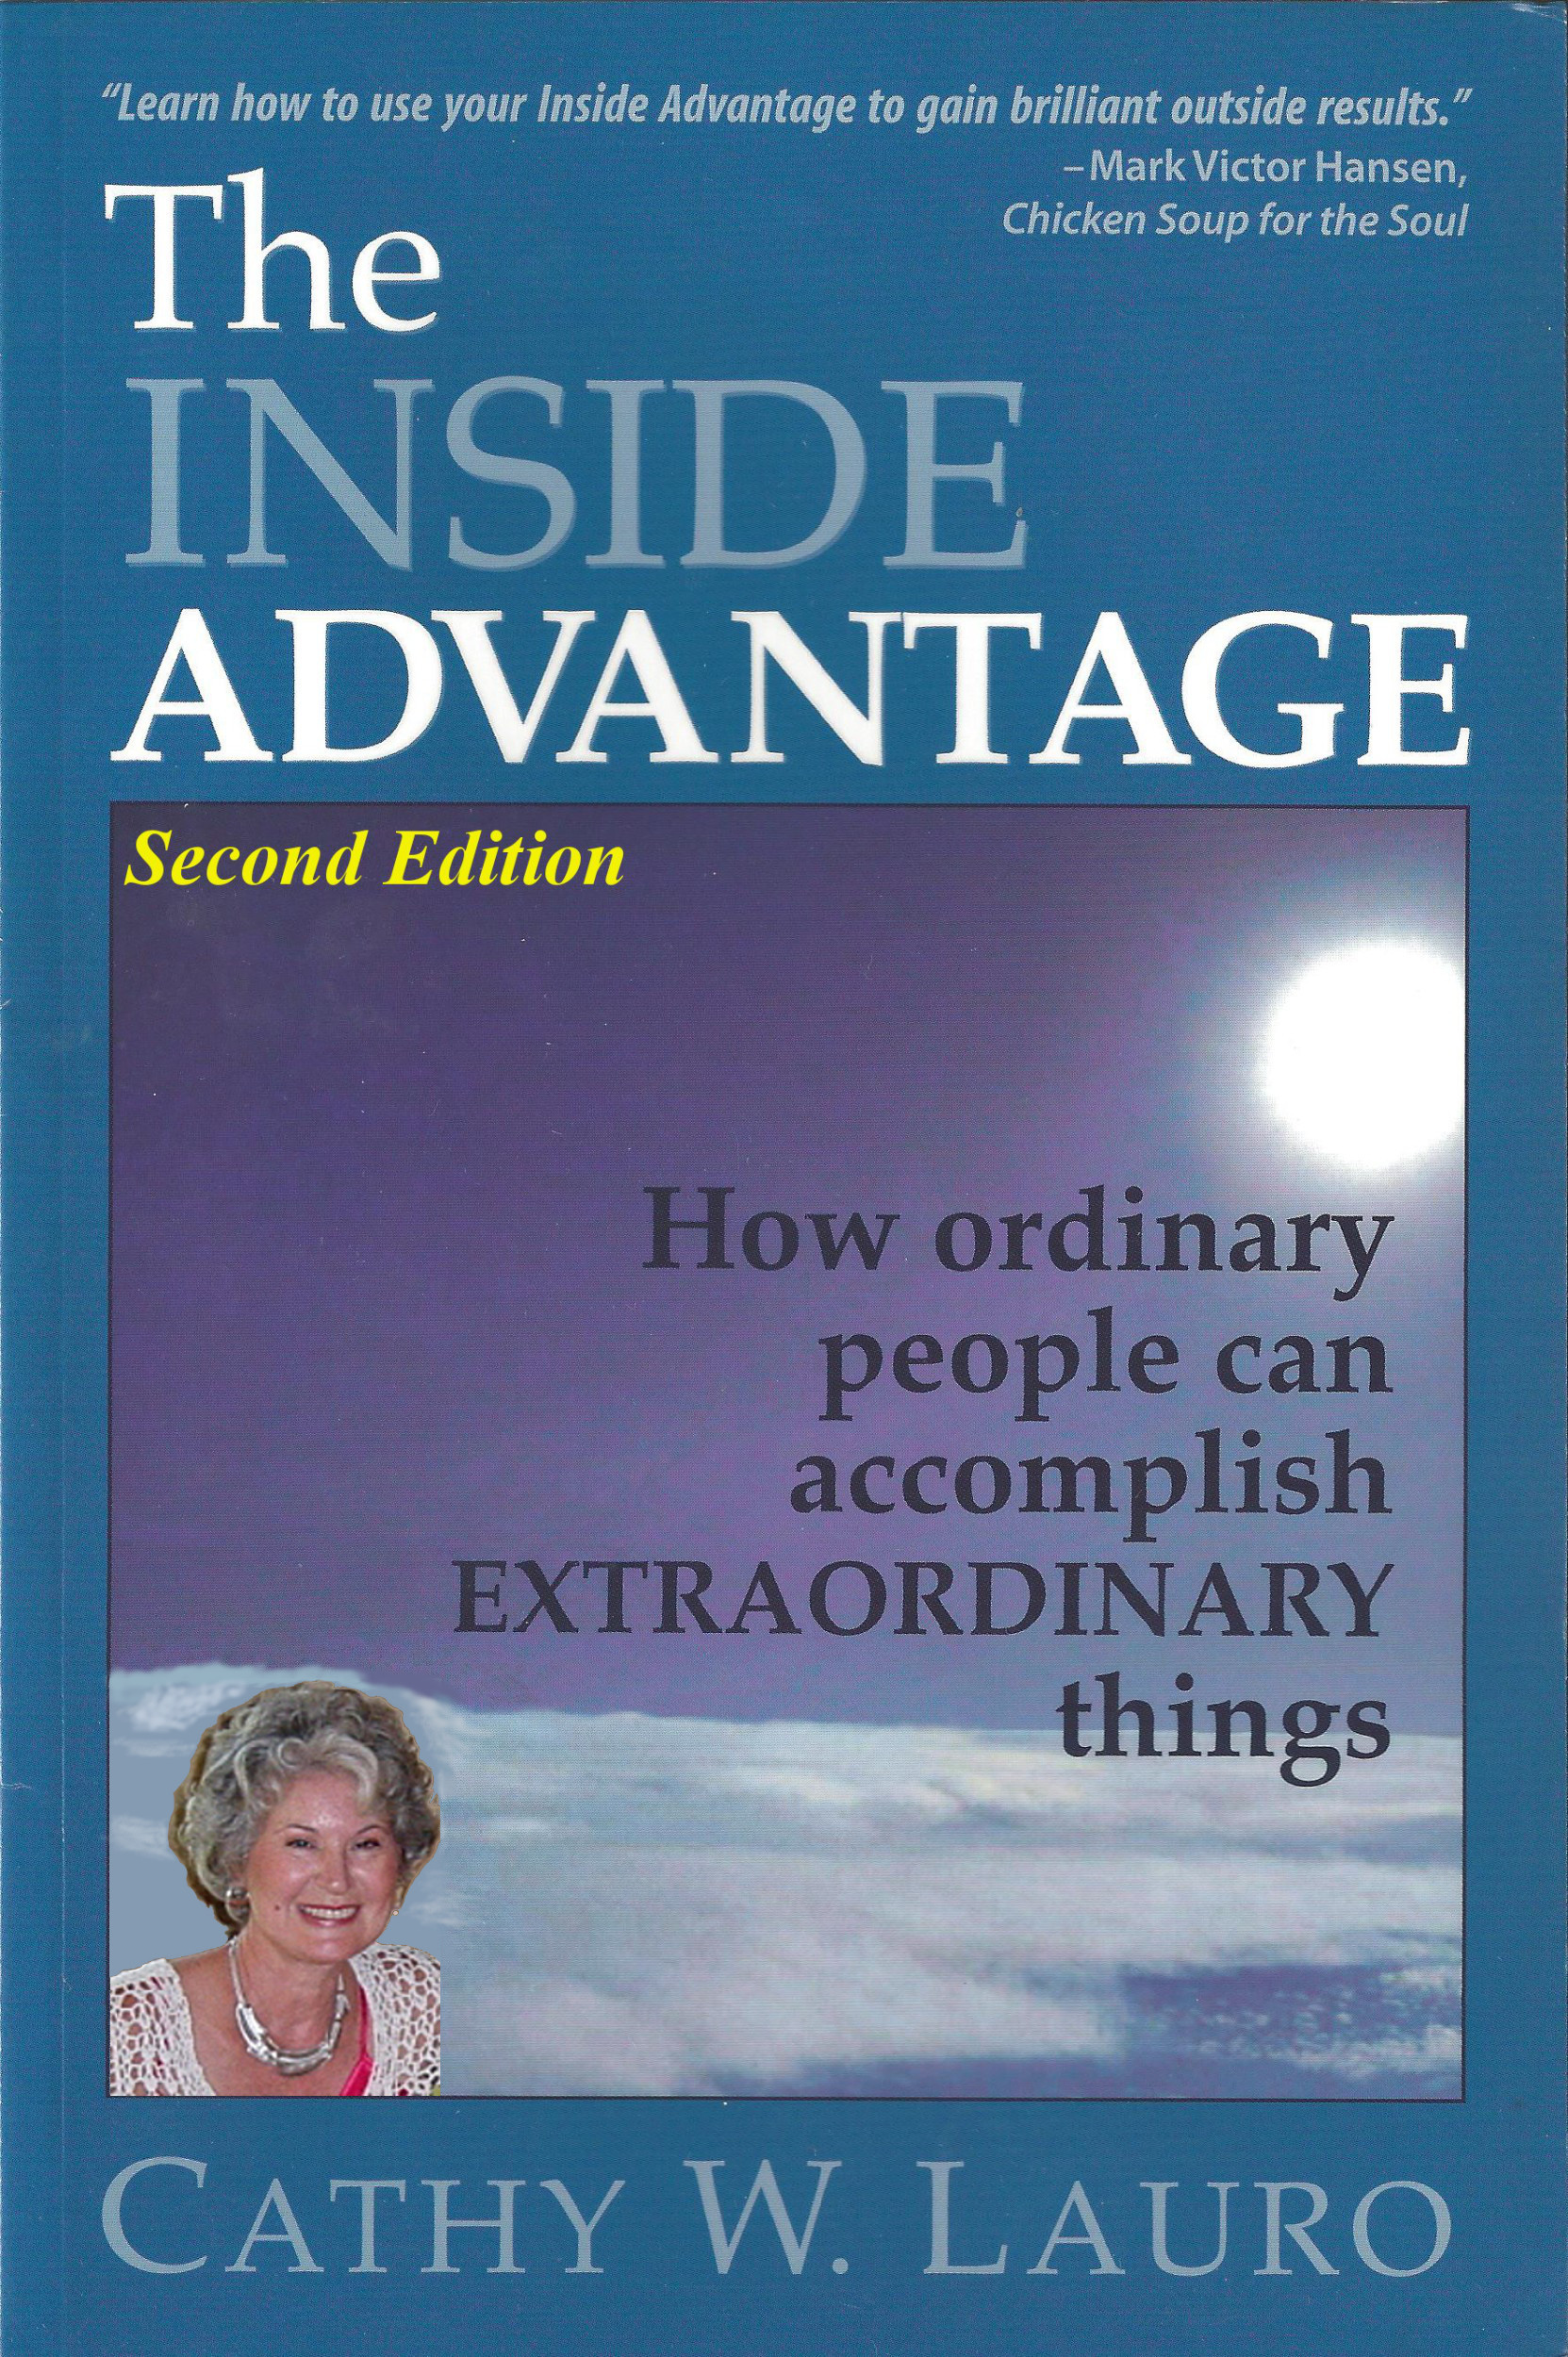 The Inside Advantage 2nd Edition eBook